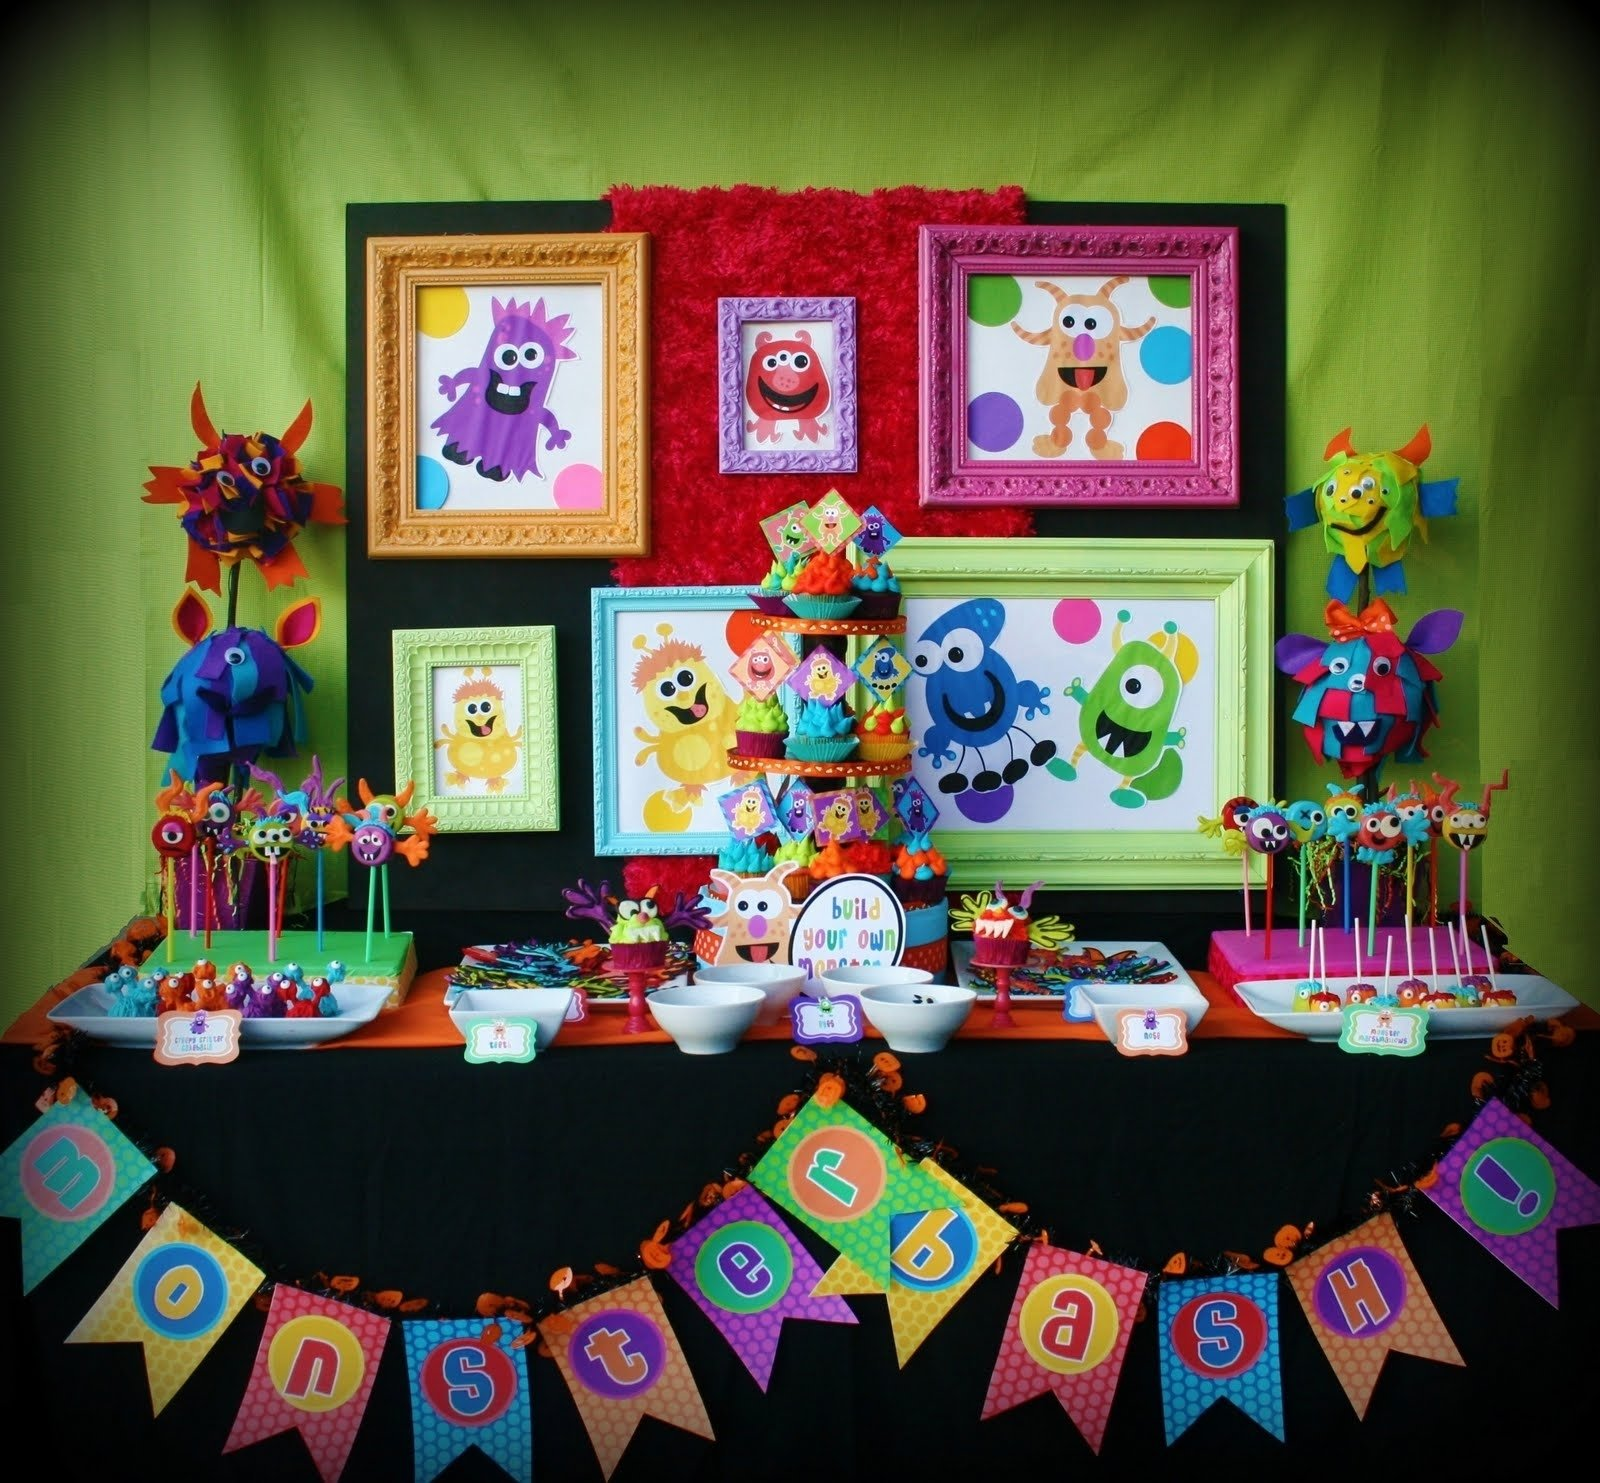 10 Stylish Ideas For Boys Birthday Party 50 awesome boys birthday party ideas i heart naptime 25